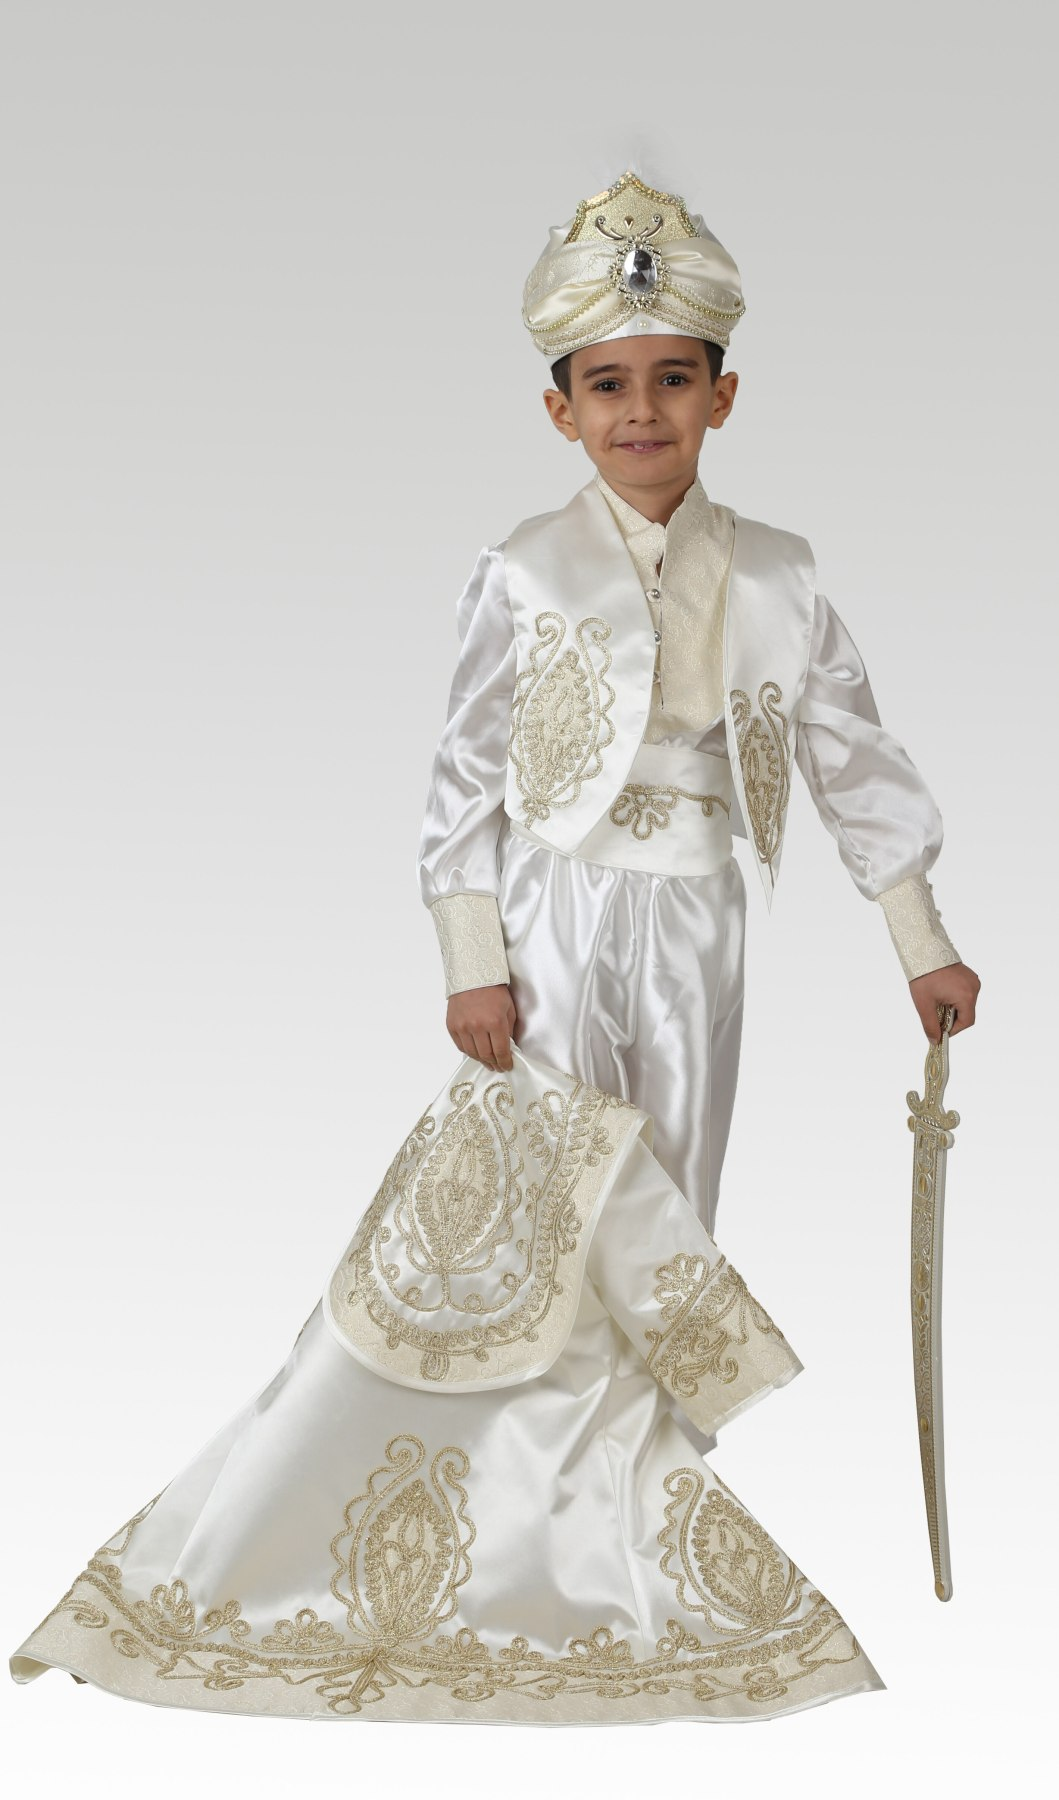 Prince Sultan Sunnet Clothes Kid Circumcision Dress 1-14 Age Birthday Party Event Costume Child Dress Muslim Islamic Turkish enlarge